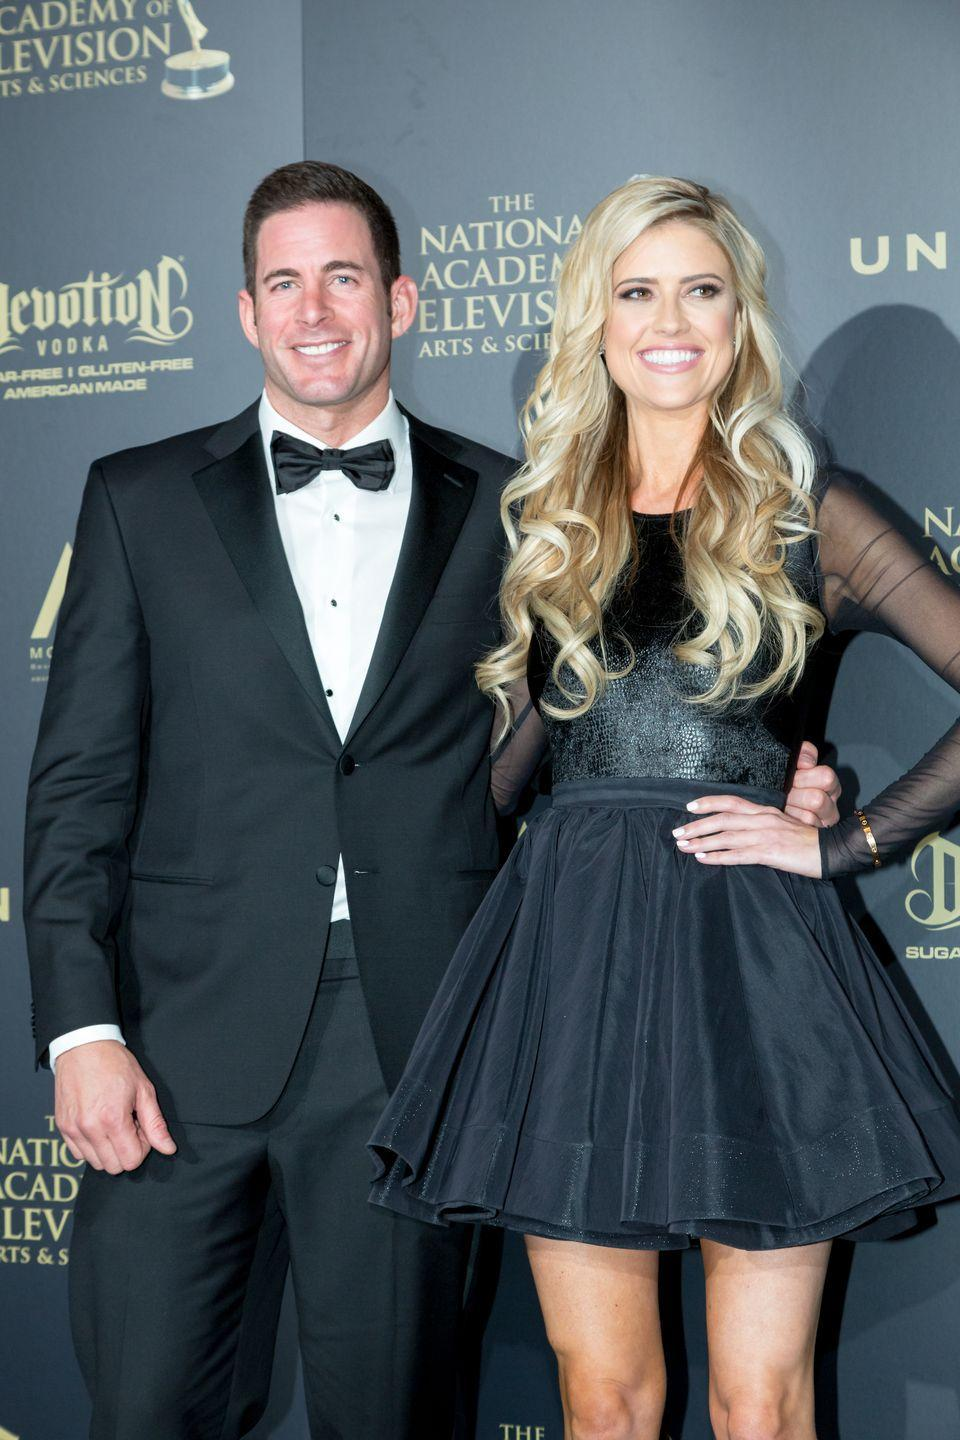 <p>El Moussa and Anstead are a dynamic duo on their home makeover show,<em> Flip or Flop—</em>even after their 2018 divorce. After separating privately in May 2016, the couple publicly announced their split later that year in December but continue to film their show together.</p>